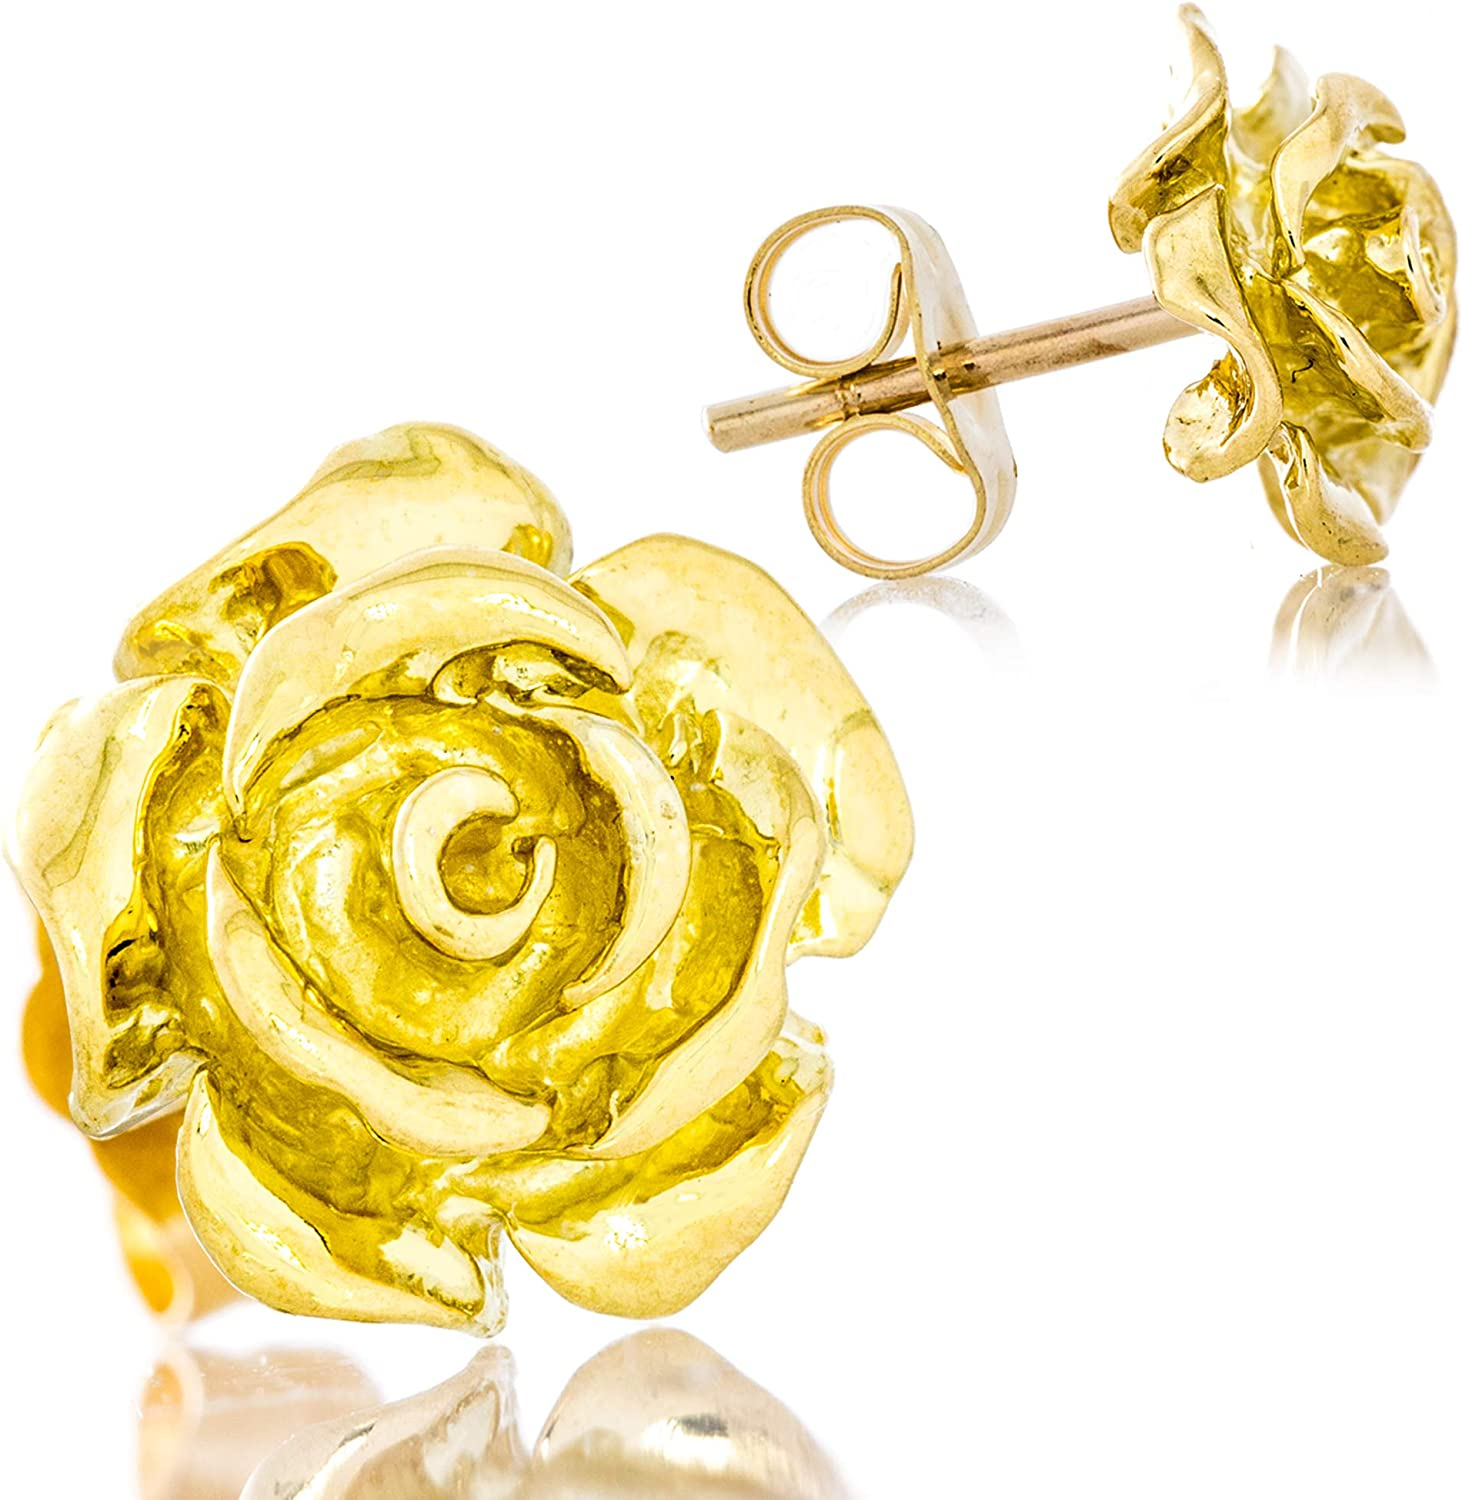 Solid 18K Yellow Gold Rose Flower Stud Earrings Handcrafted style 3/8 inch with Post and Friction Back   2.8g